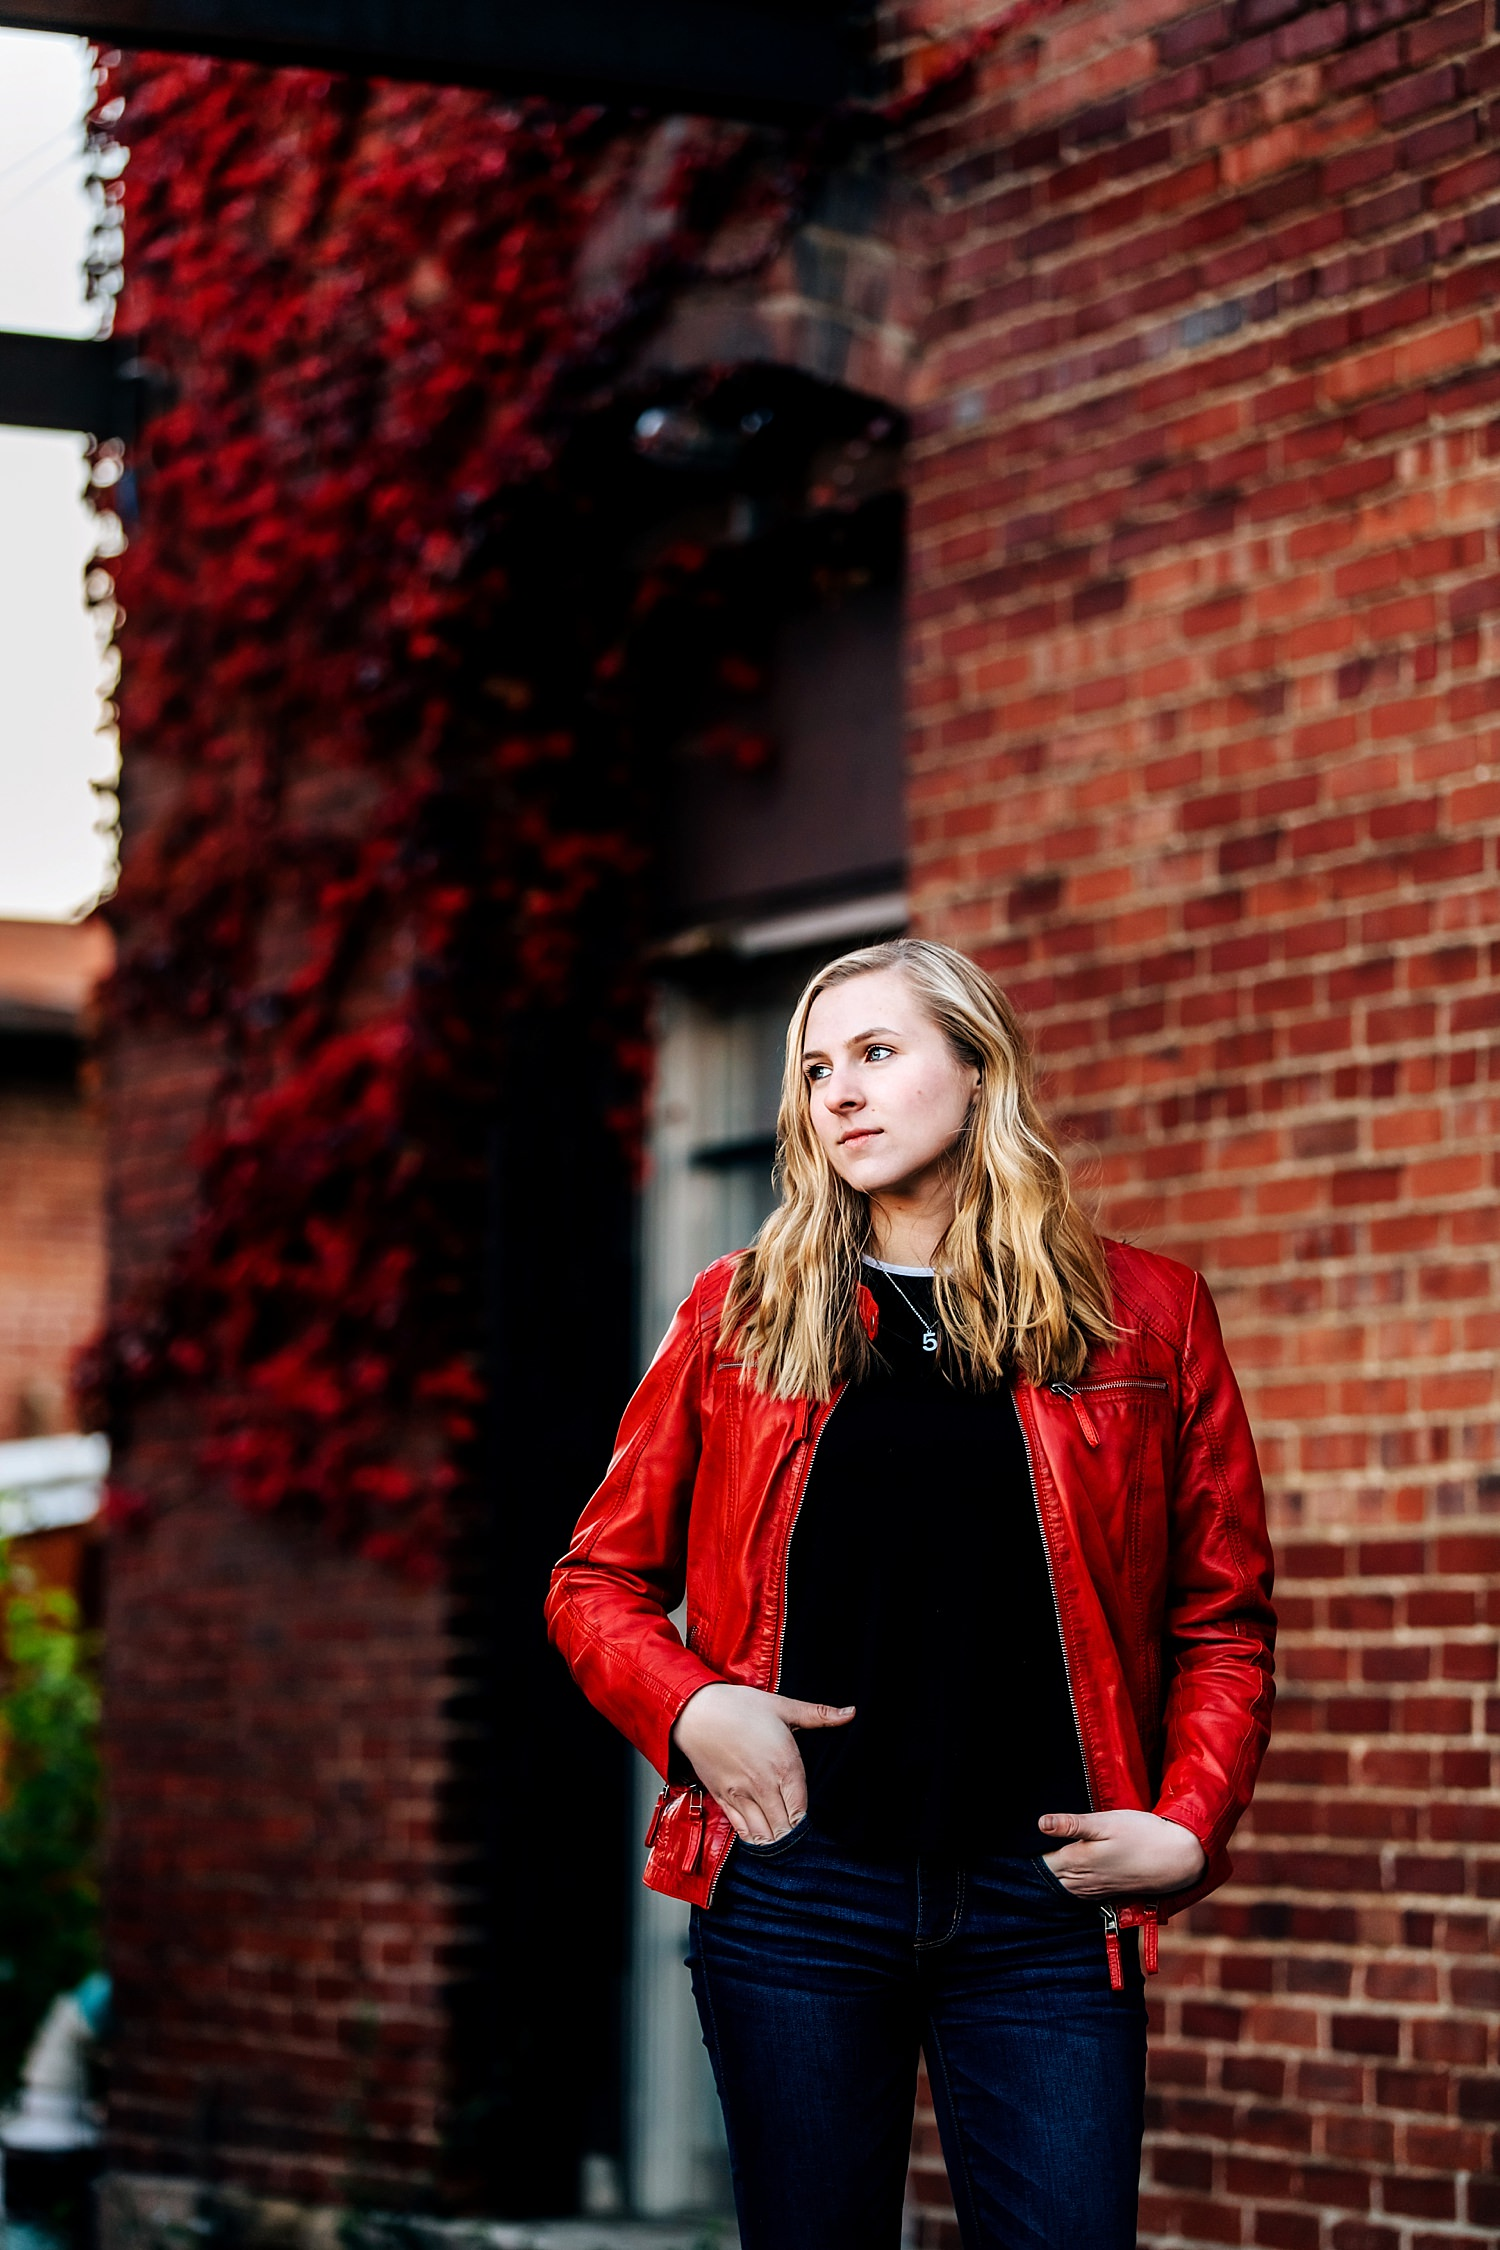 senior portrait against brick wall with red ivy in background in newark ohio